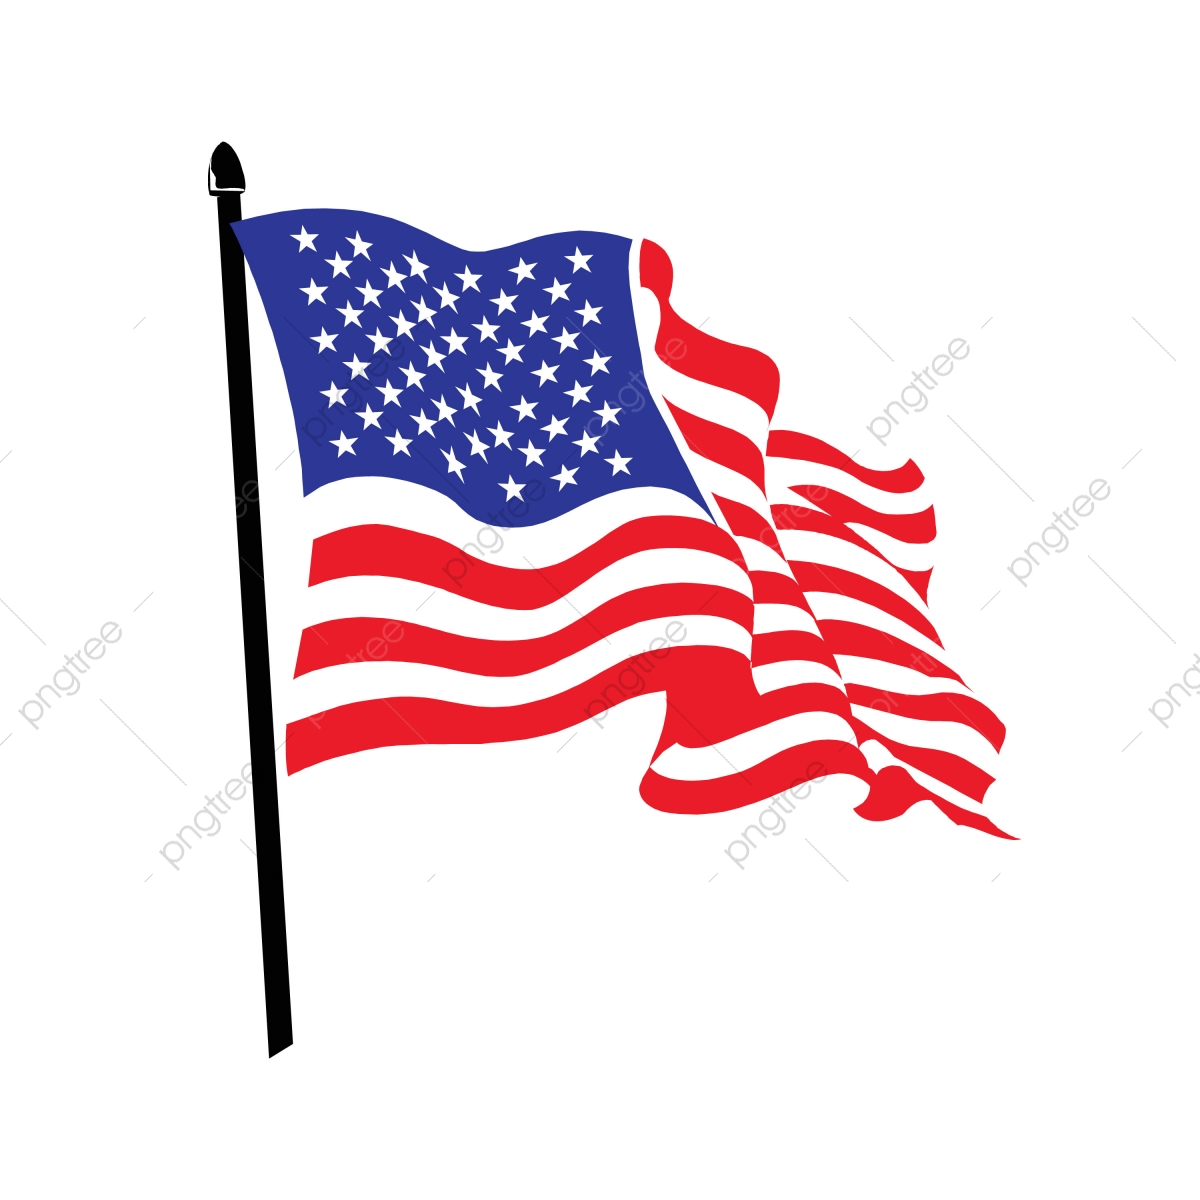 Free American Flag Printable, Download Free Clip Art, Free Clip Art on  Clipart Library